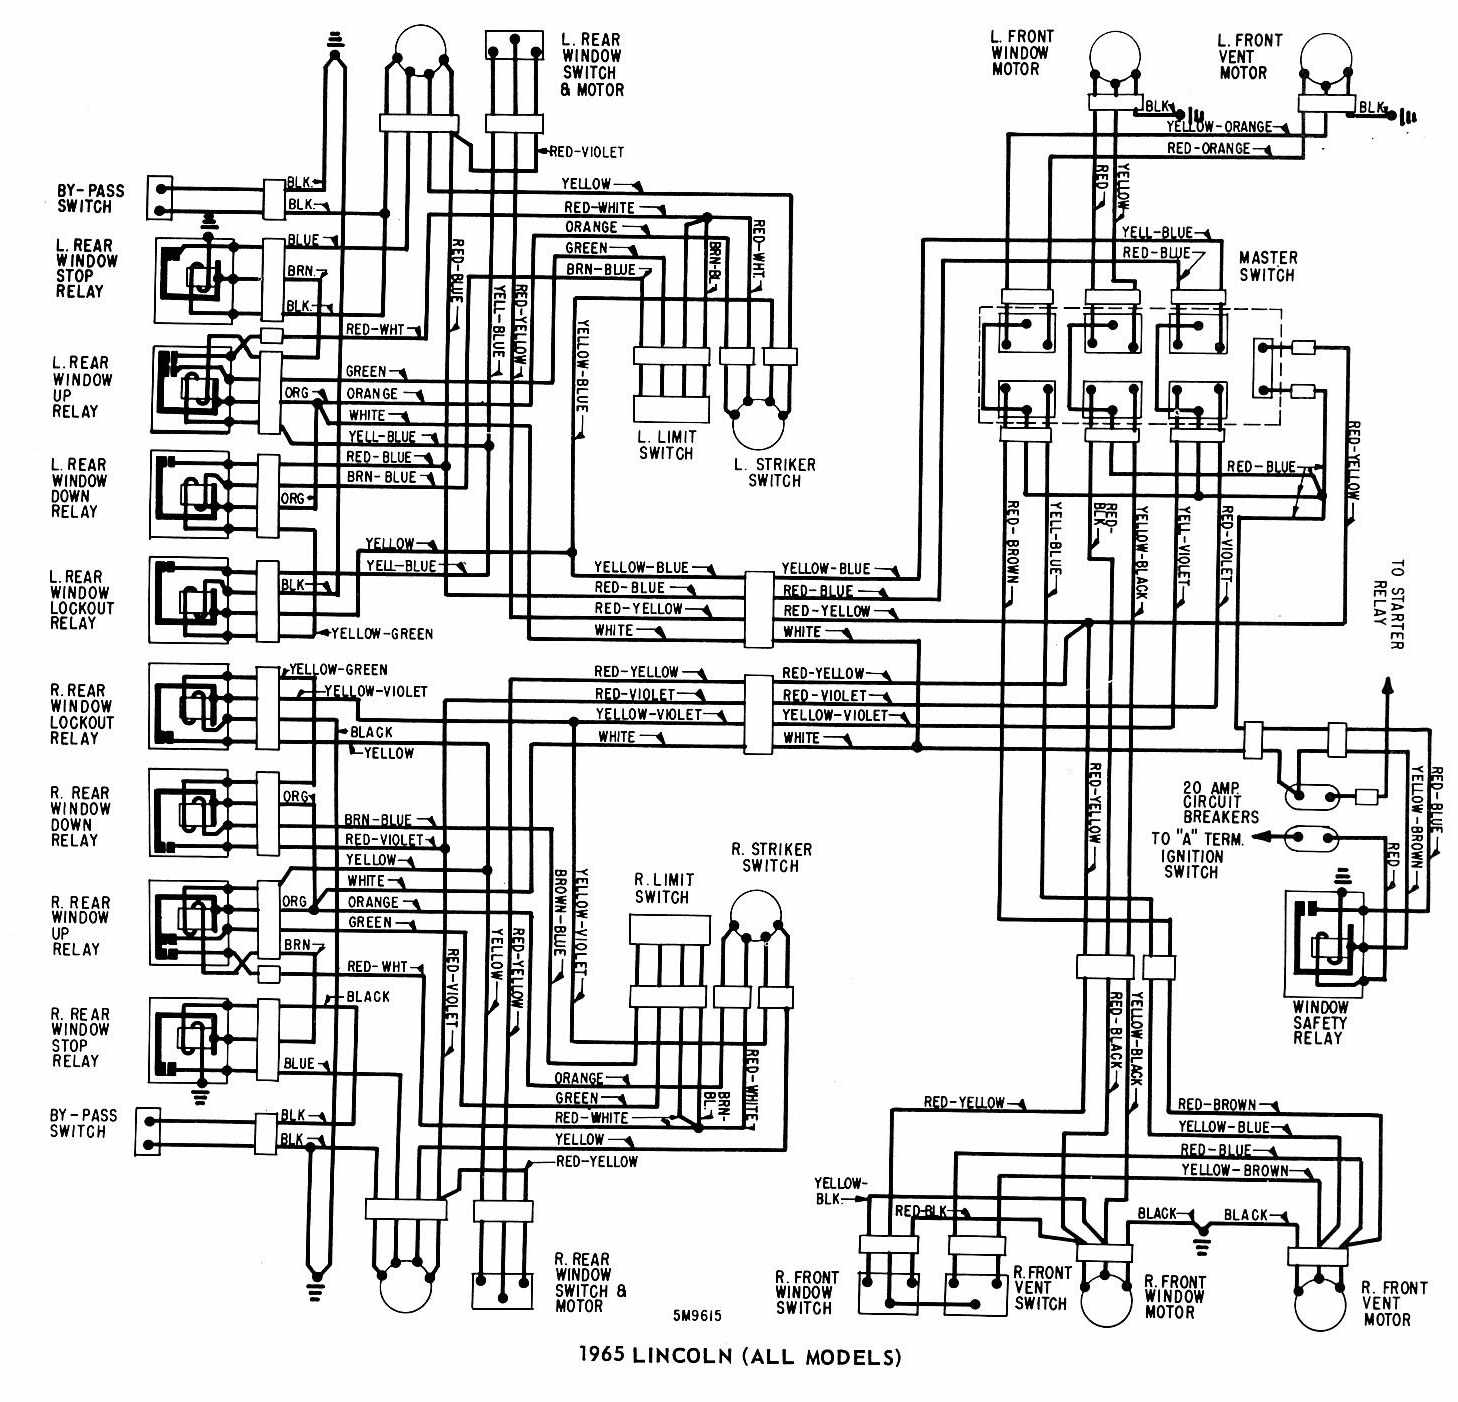 1951 lincoln wiring diagram wiring diagram u2022 rh msblog co 1965 lincoln continental convertible top wiring diagram 1965 Lincoln Wiring Diagrams Automotive